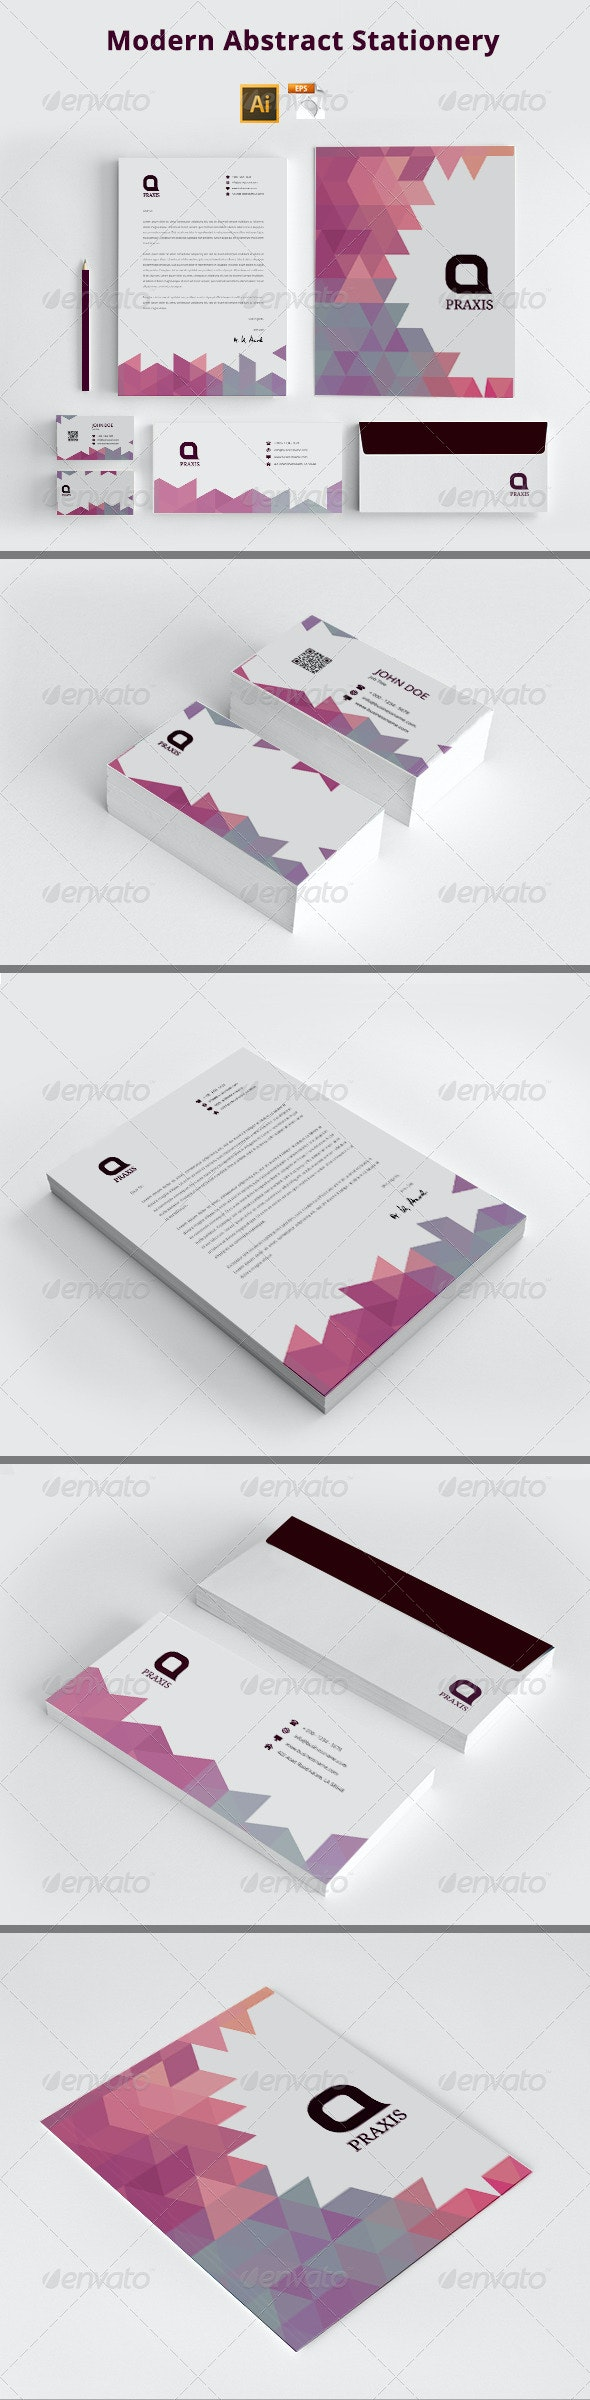 Modern Abstract Stationery - Stationery Print Templates